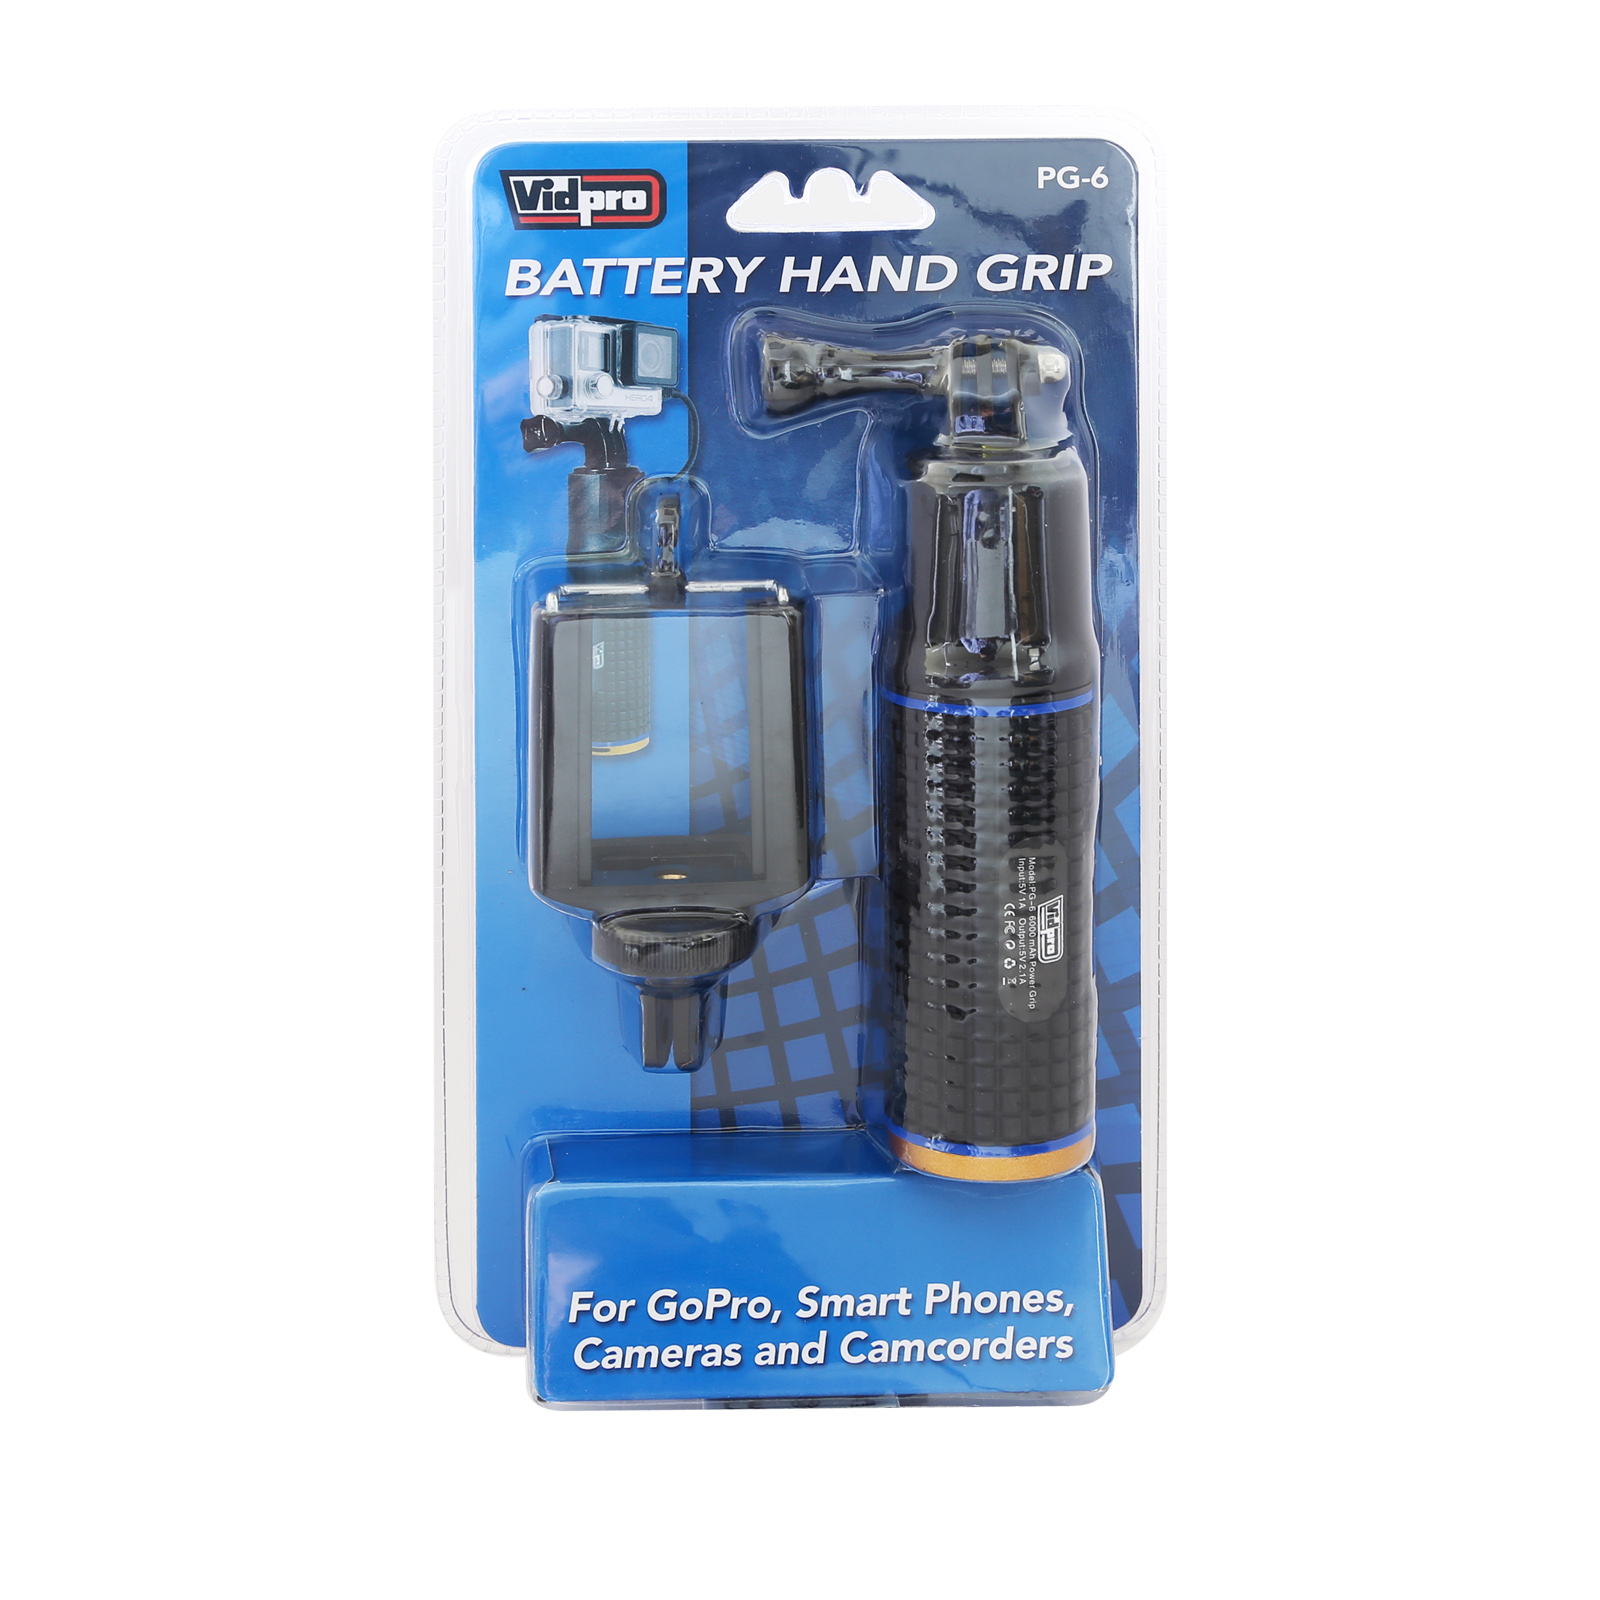 New cell phone battery for samsung ativ s gt i8750 i8750 omnia odyssey - Monopods For Samsung Galaxy Fit Cell Phone